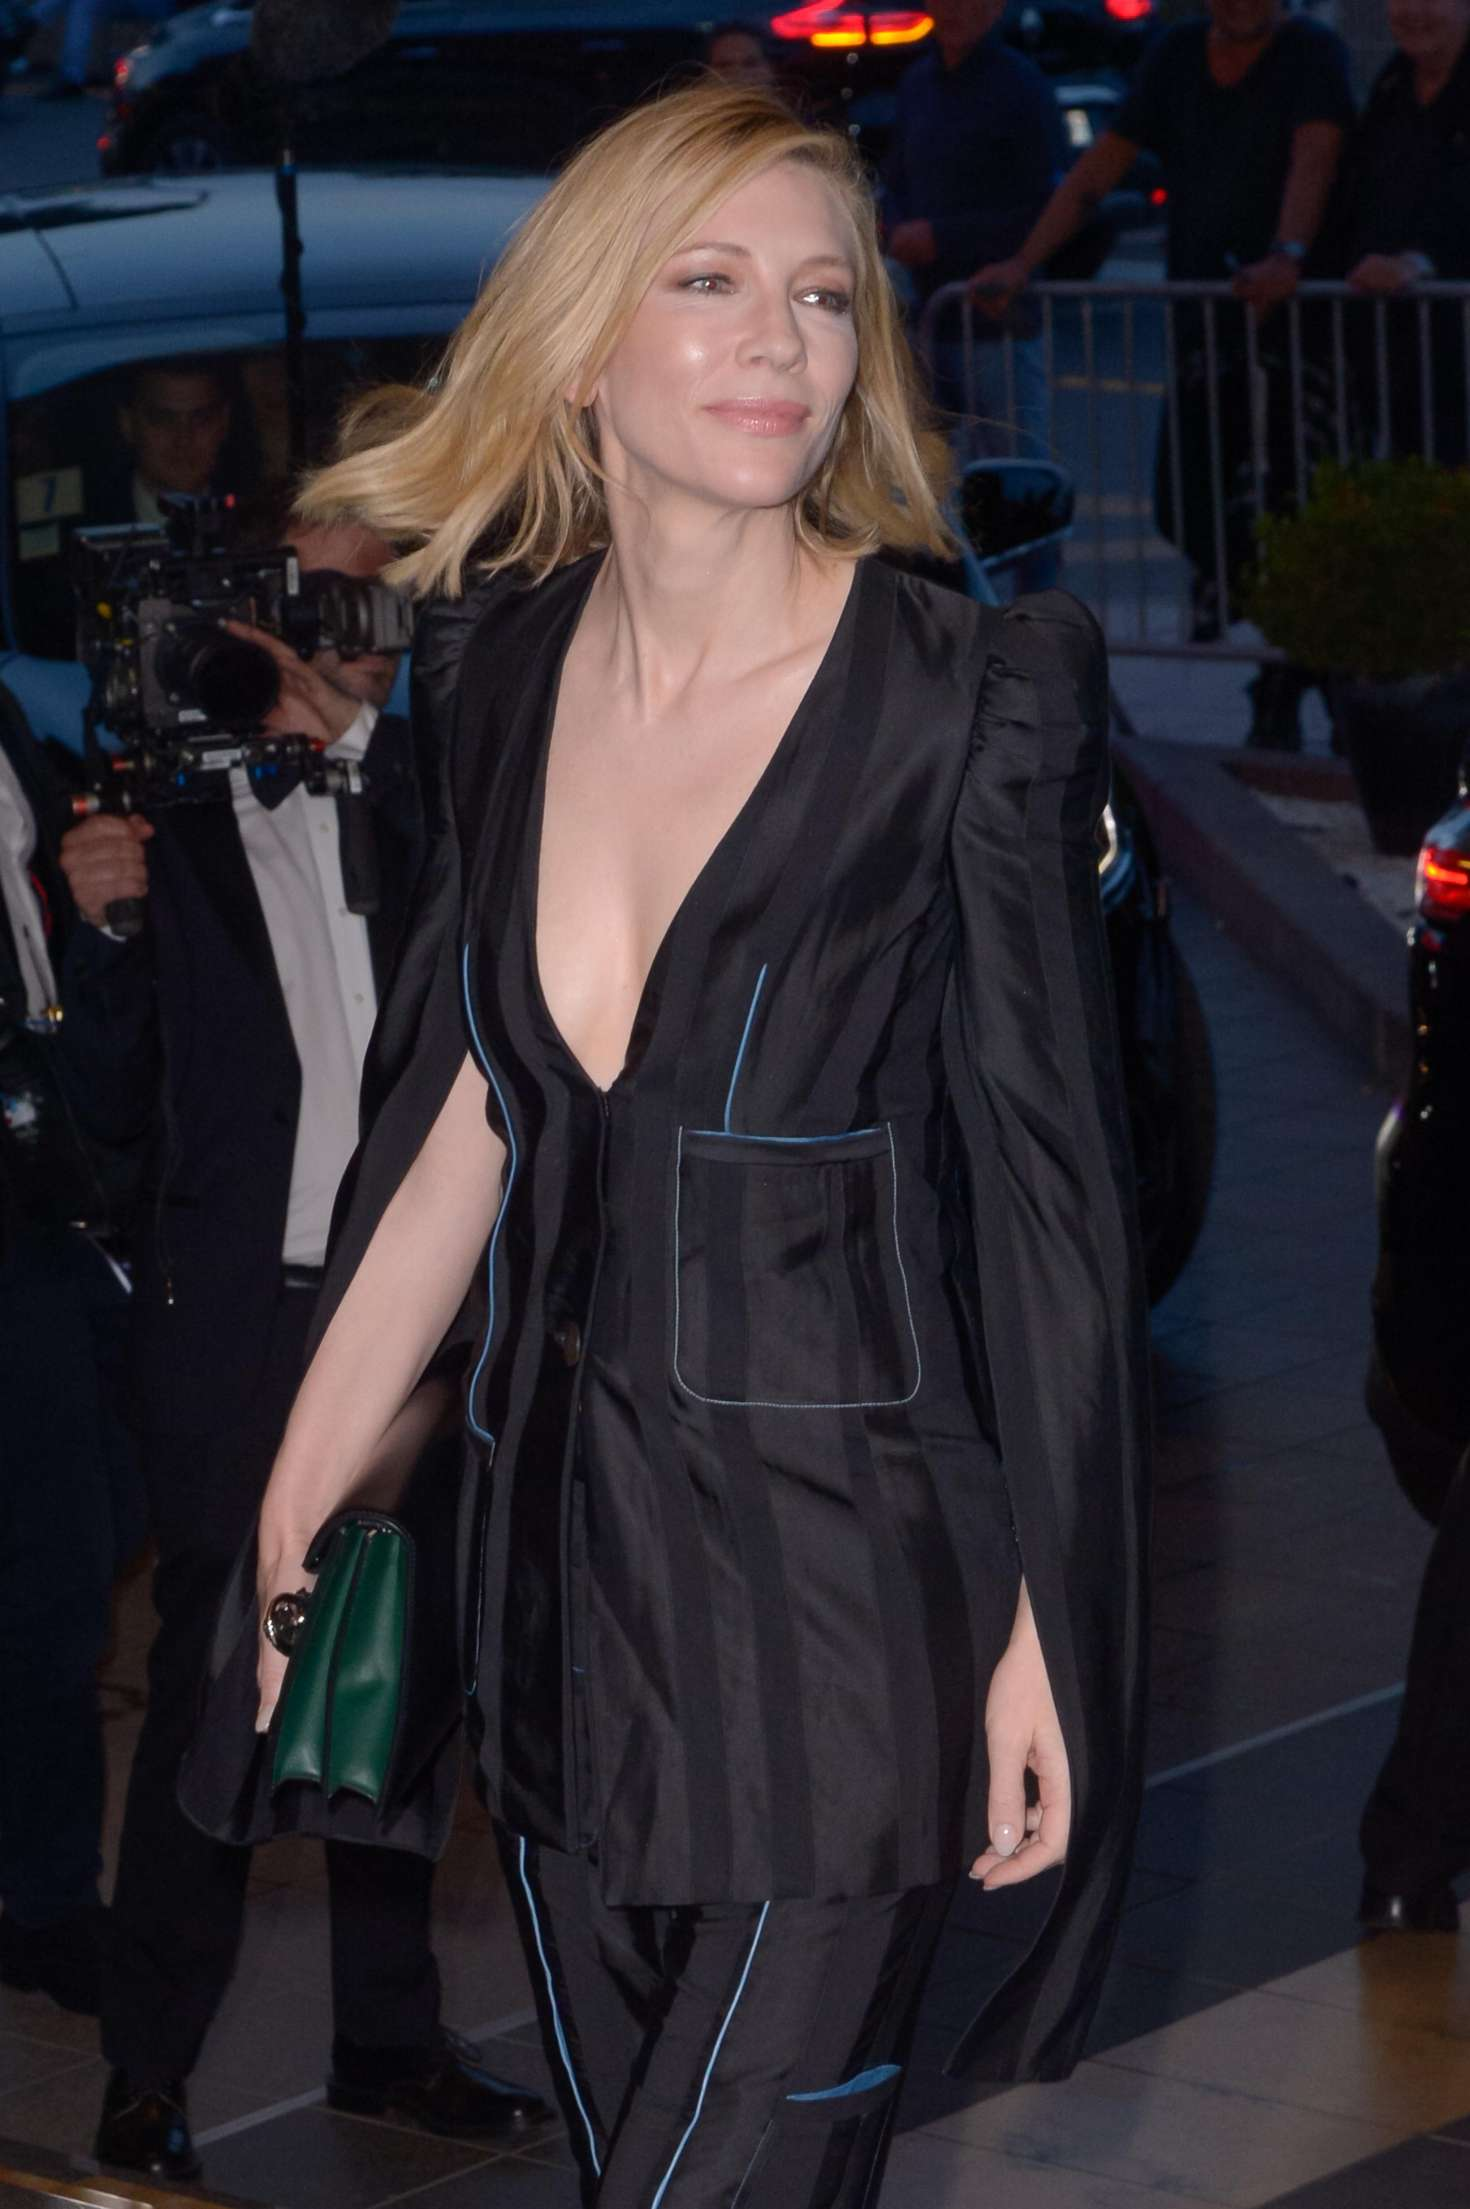 Cate Blanchett 2018 : Cate Blanchett: Arrives at the Vanity Fair Party -11